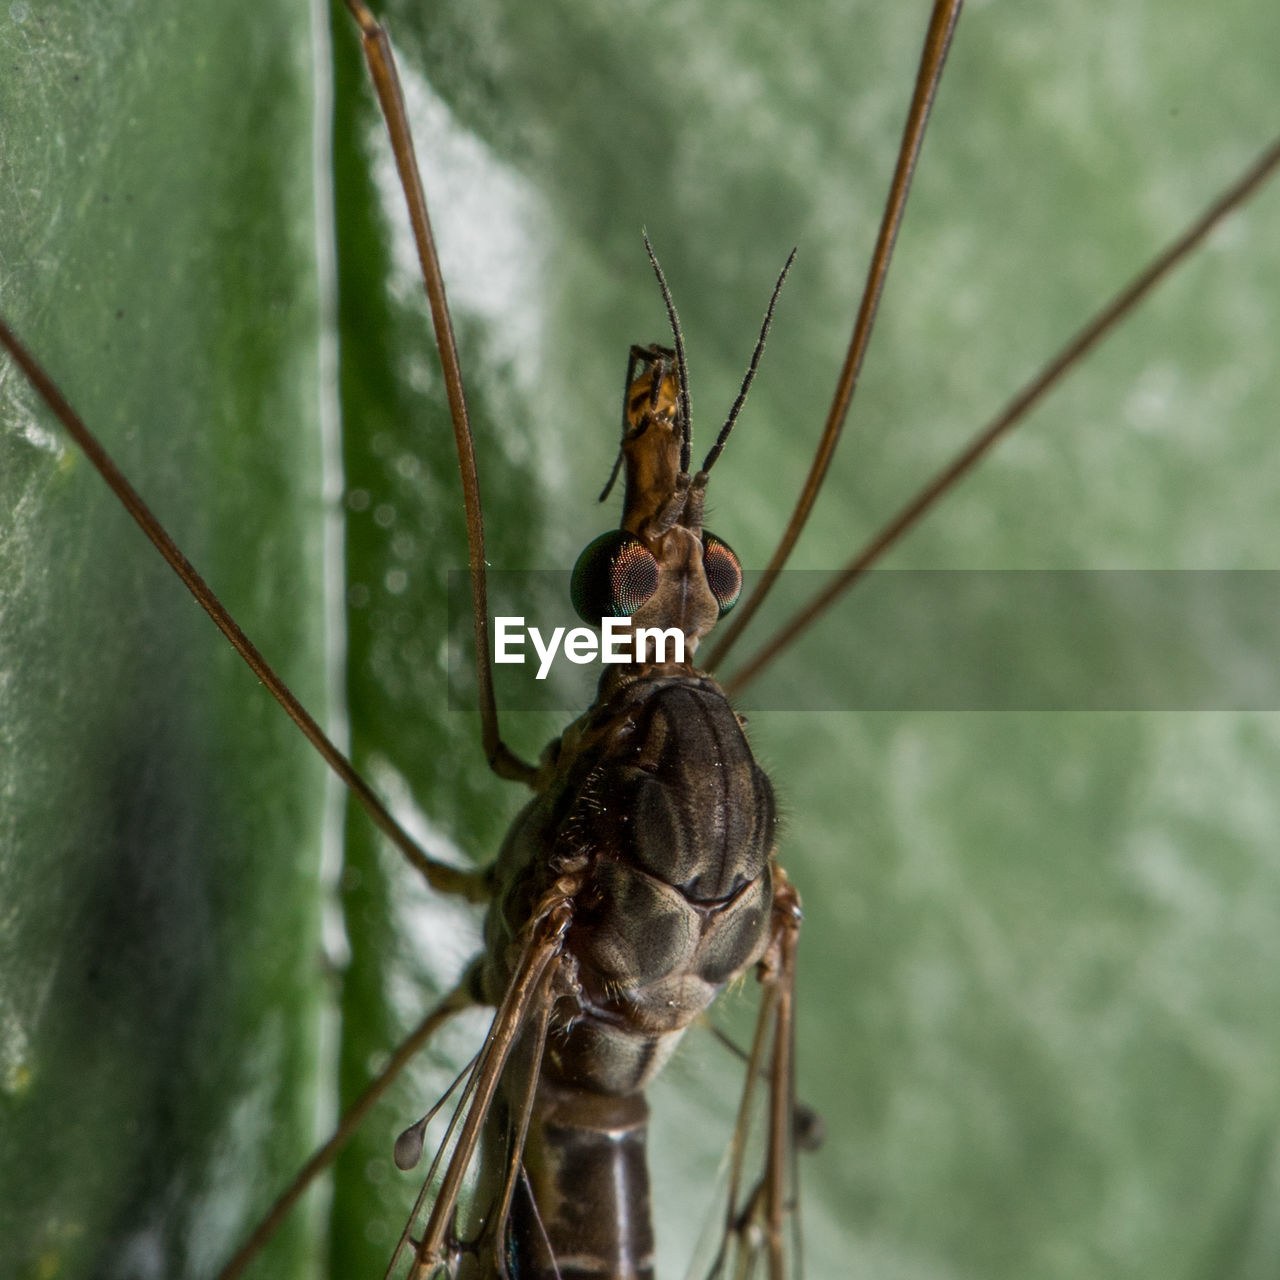 one animal, animal wildlife, animal, animals in the wild, animal themes, insect, invertebrate, close-up, day, nature, no people, focus on foreground, animal body part, zoology, outdoors, plant, green color, animal antenna, animal wing, animal head, animal eye